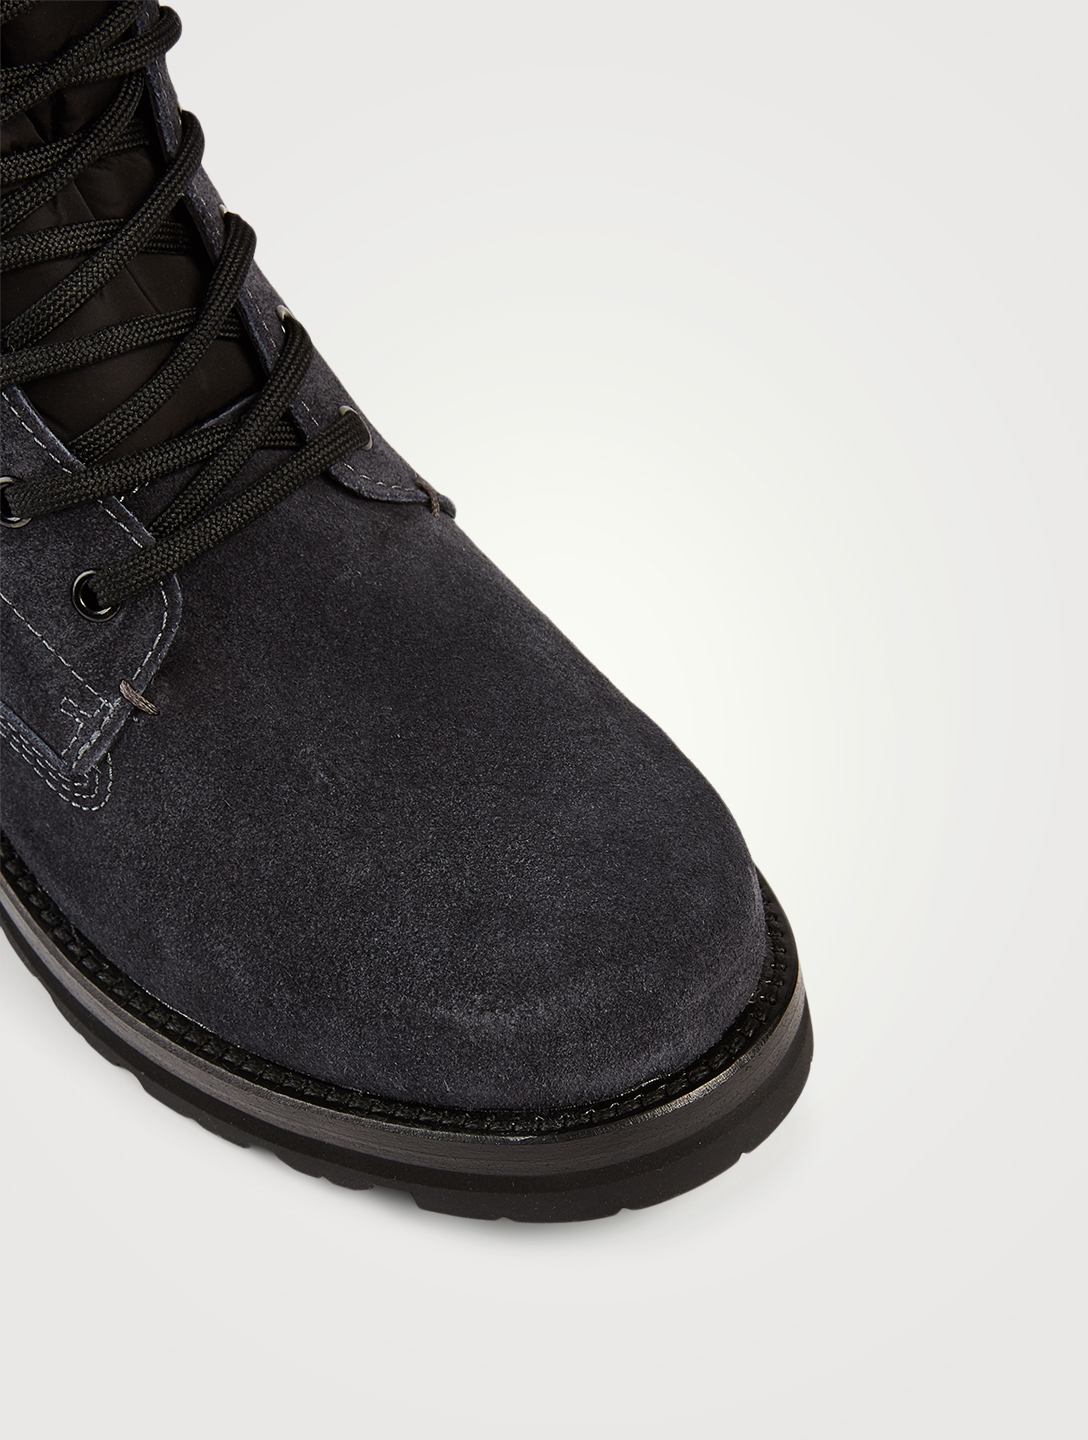 MONCLER Vancouver Suede Lace-Up Ankle Boots Men's Grey